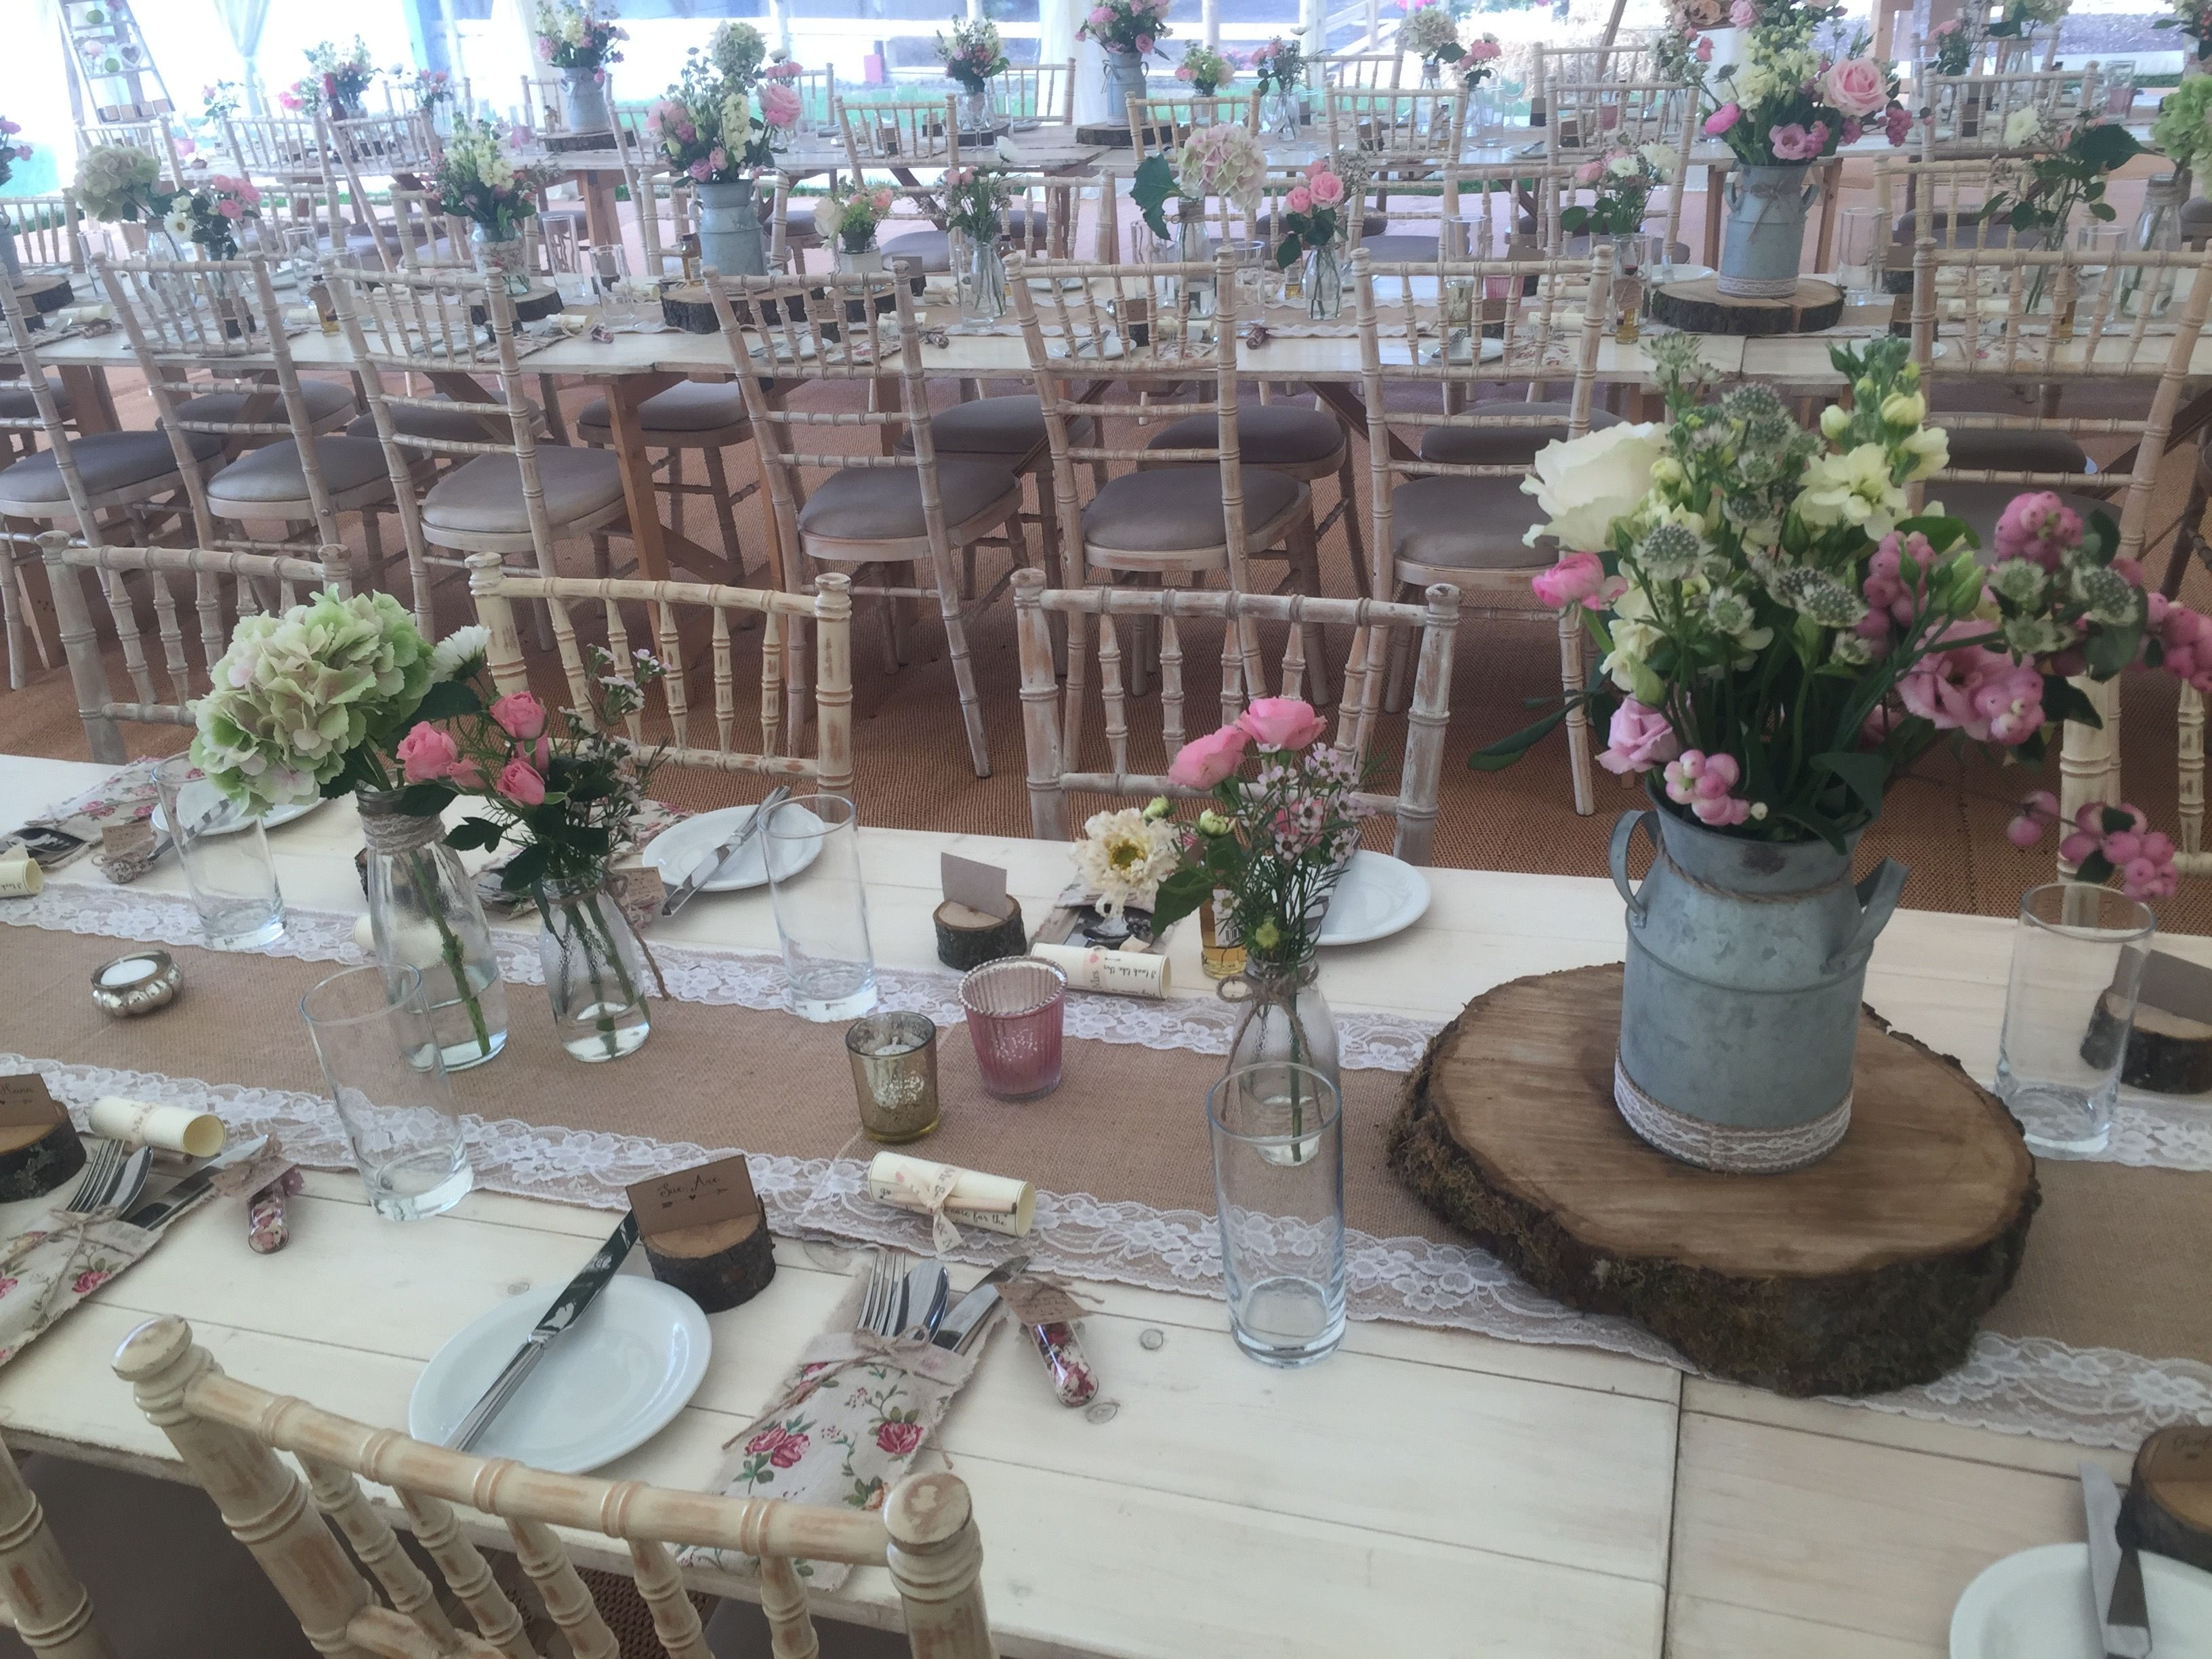 Rustic Vintage Trestle Table From South West Event Hire Furniture Hire Wedding Furniture Rustic Vintage Wedding